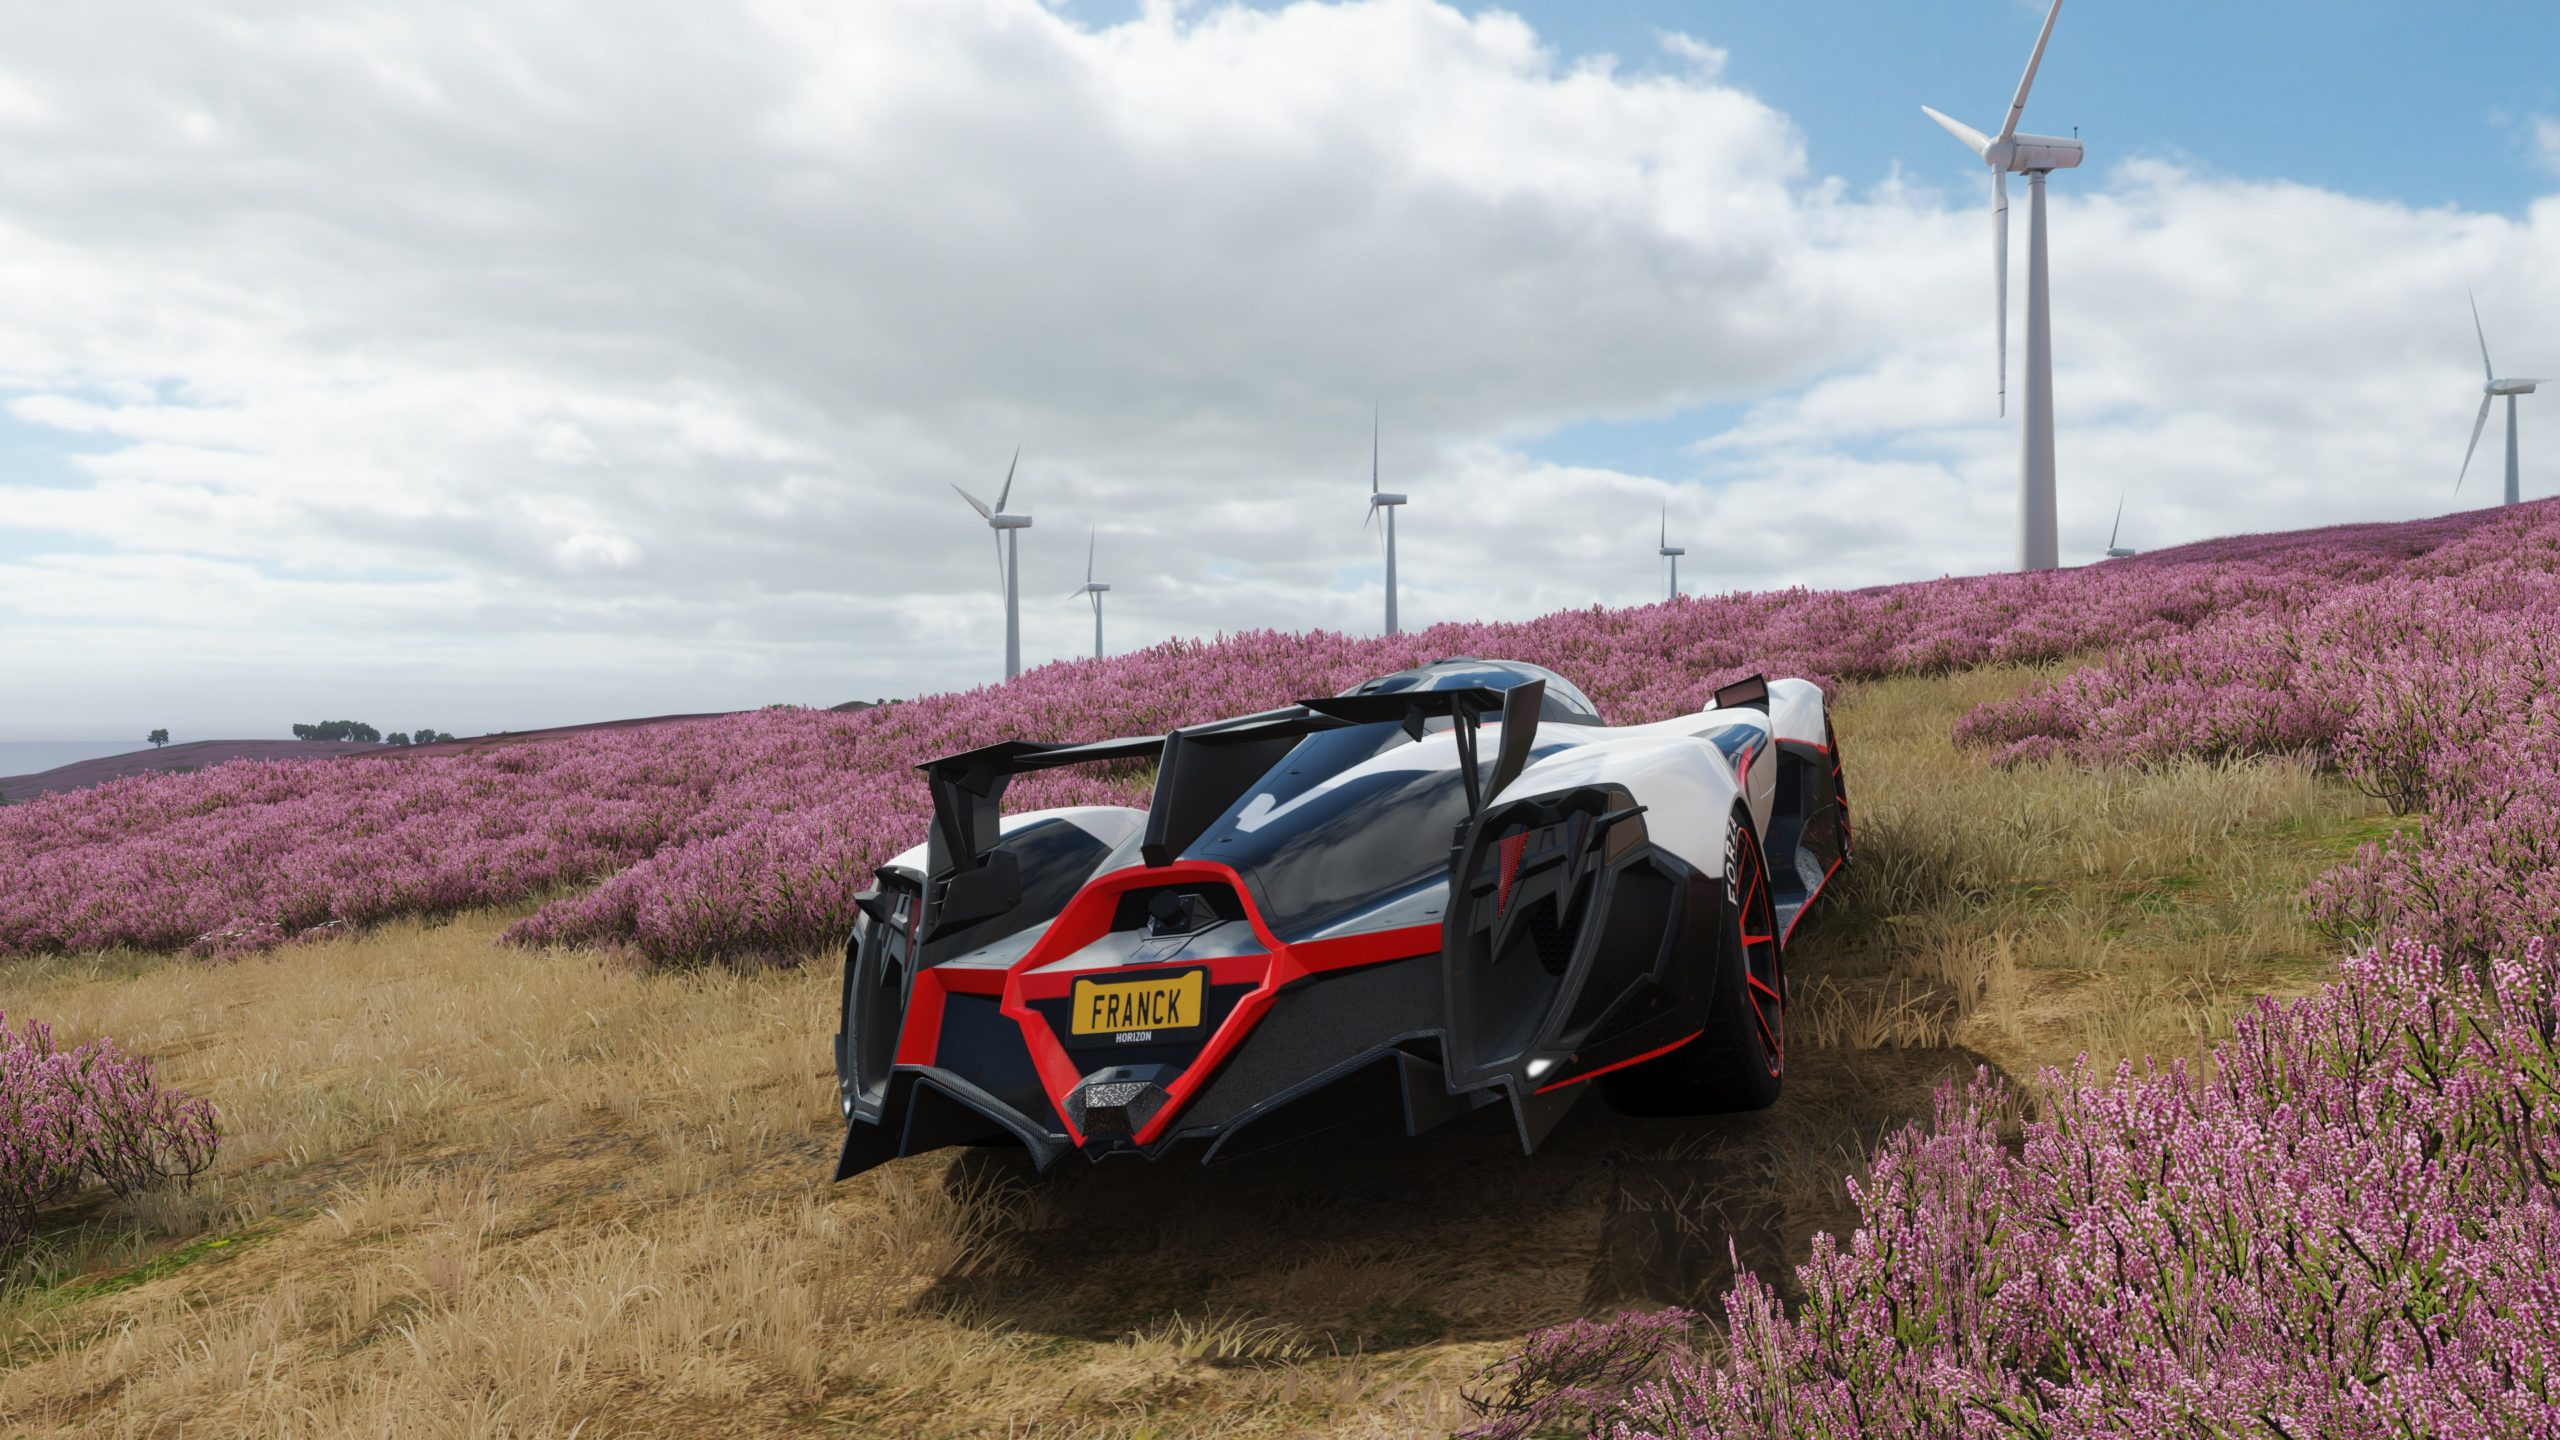 Forza-Horizon-4-Sélection-Festival-Horizon-49-Ete-08-04-2021-15-04-2021-4